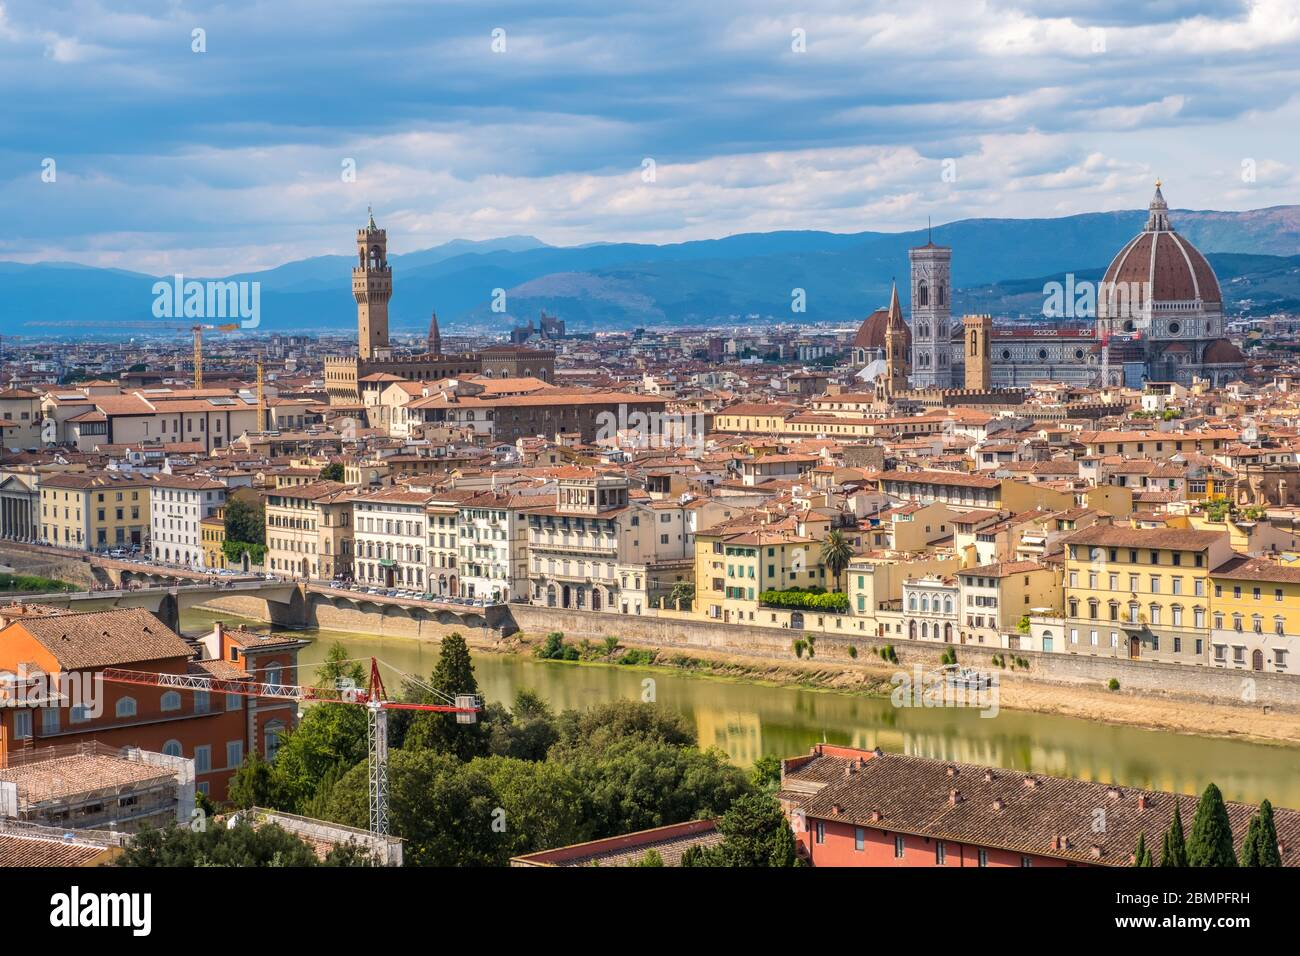 Florence, Italy - August 16, 2019: View of Florence Skyline with Ponte Vecchio and Santa Maria del Fiore Duomo, Tuscany, Italy Stock Photo